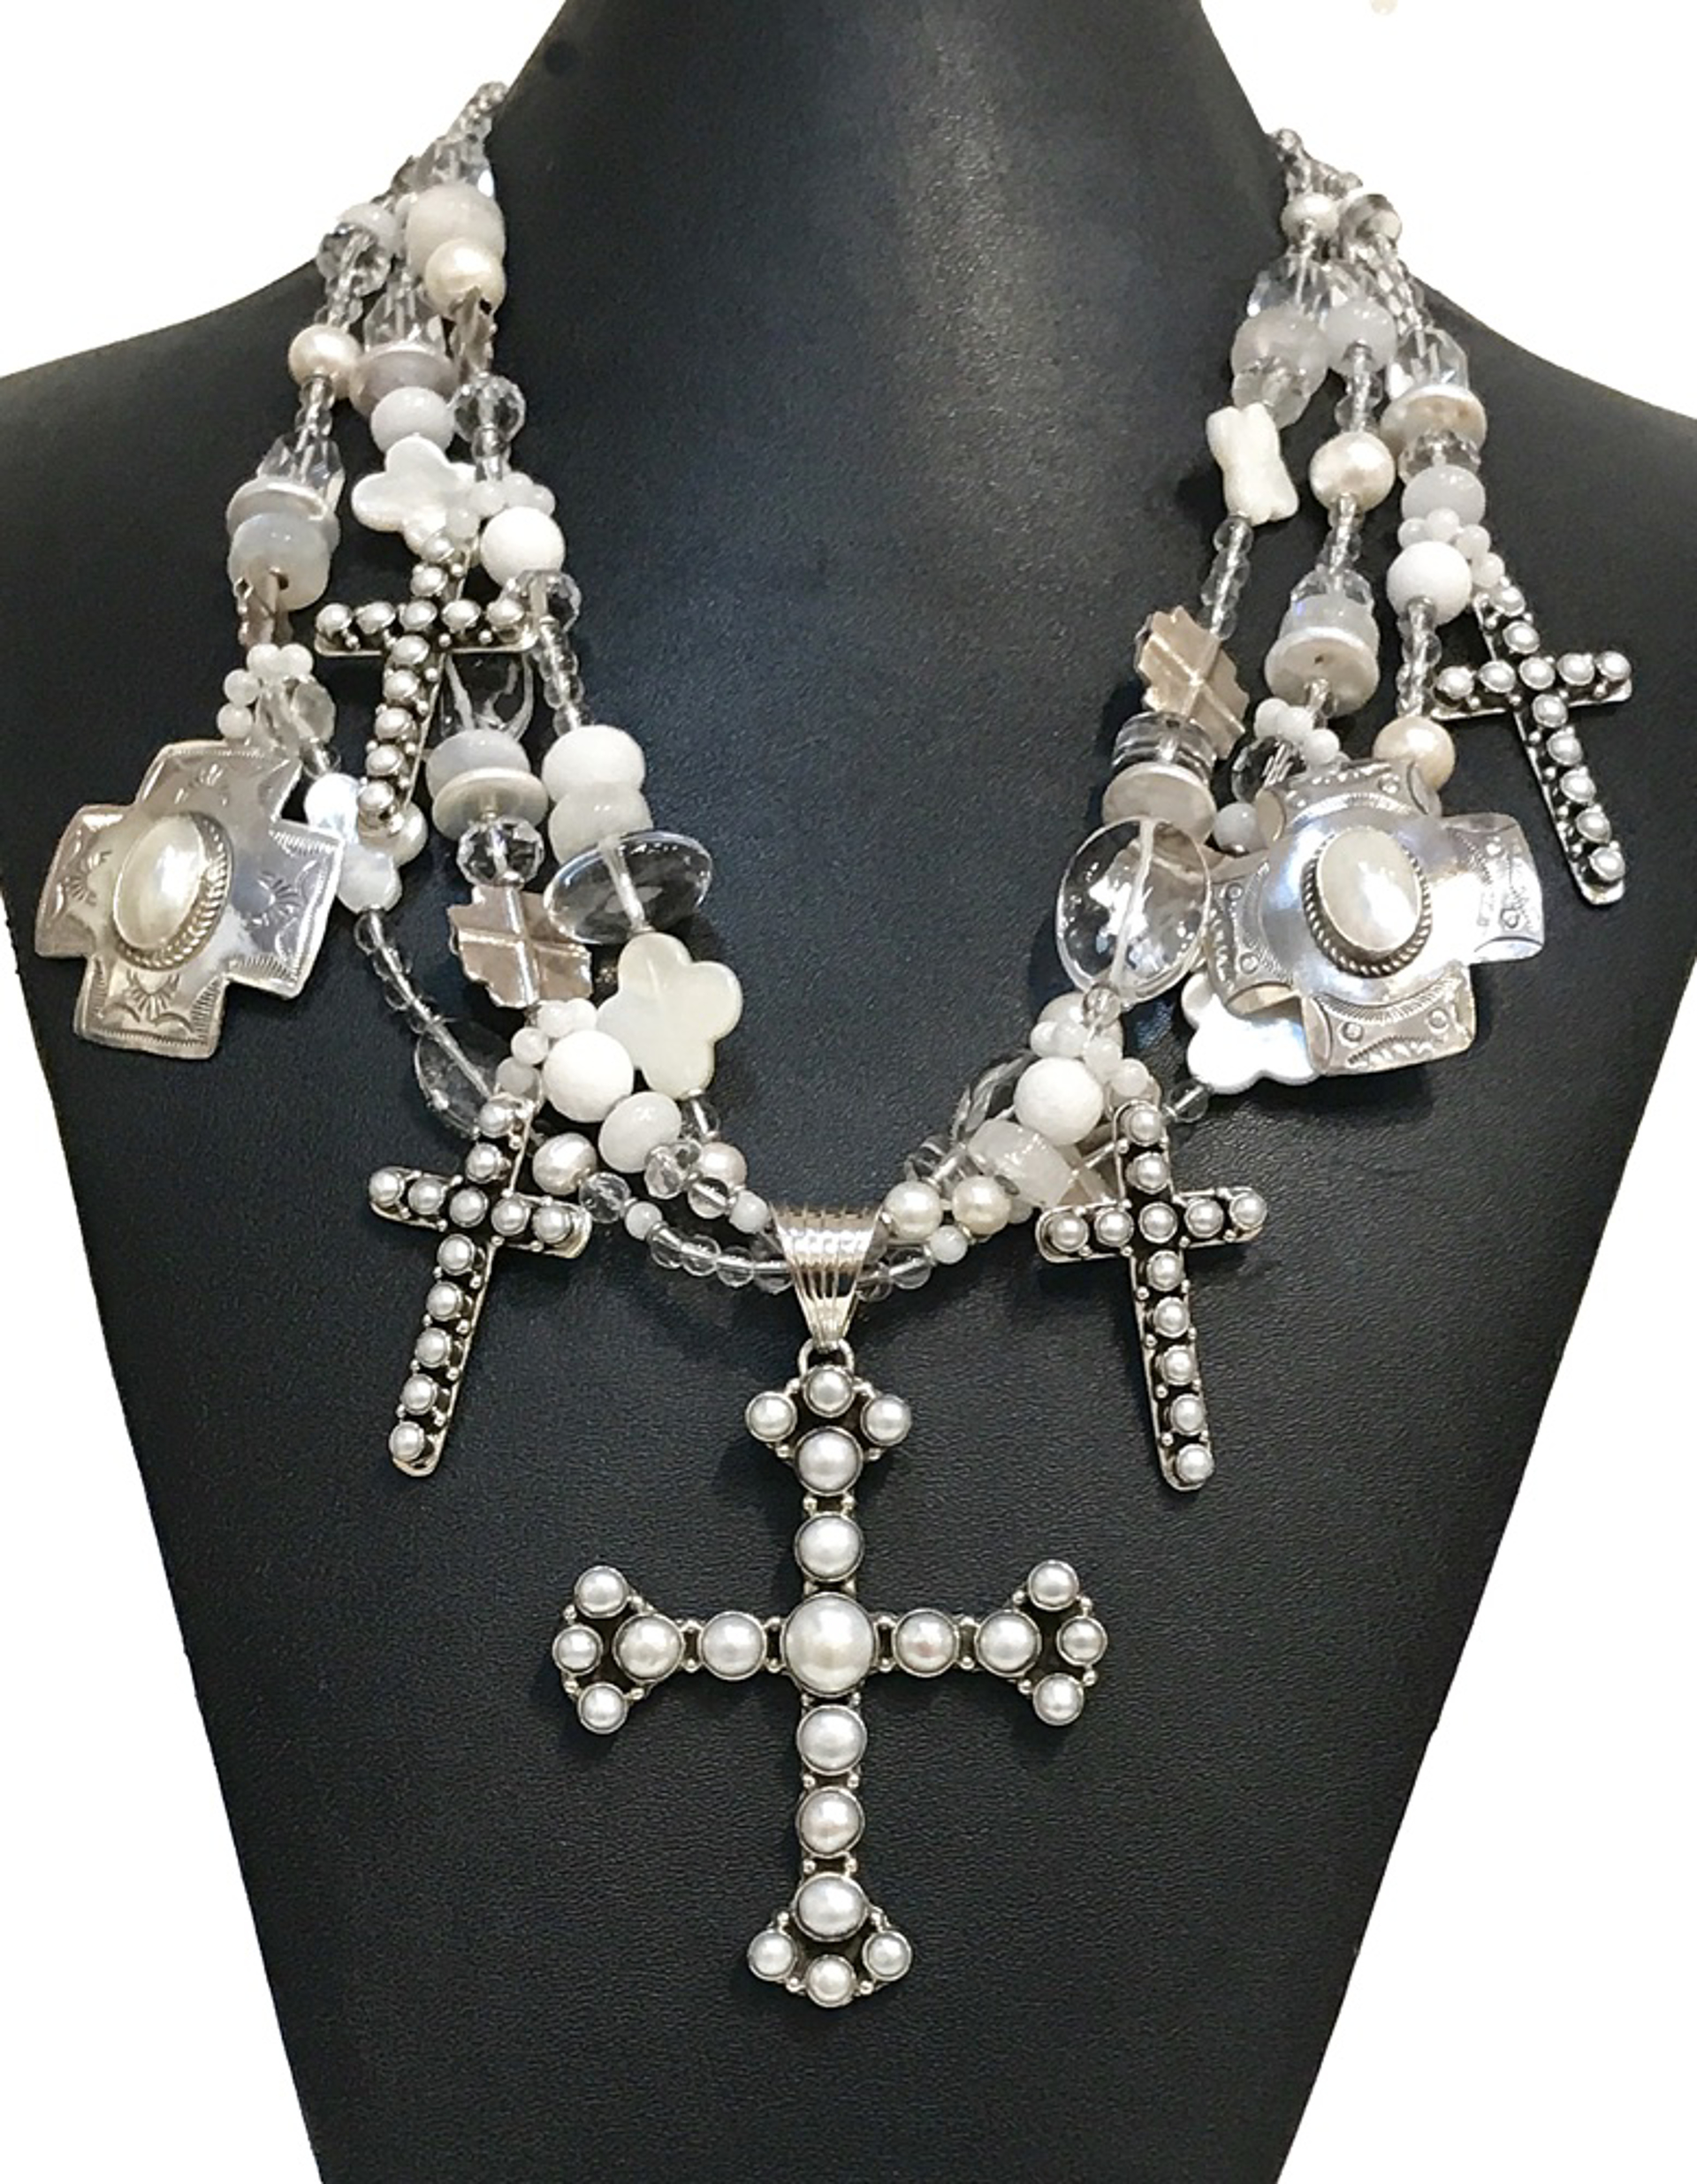 KY 1269 Three Strand Cross Necklace Mother of and Freshwater Pearls by Kim Yubeta